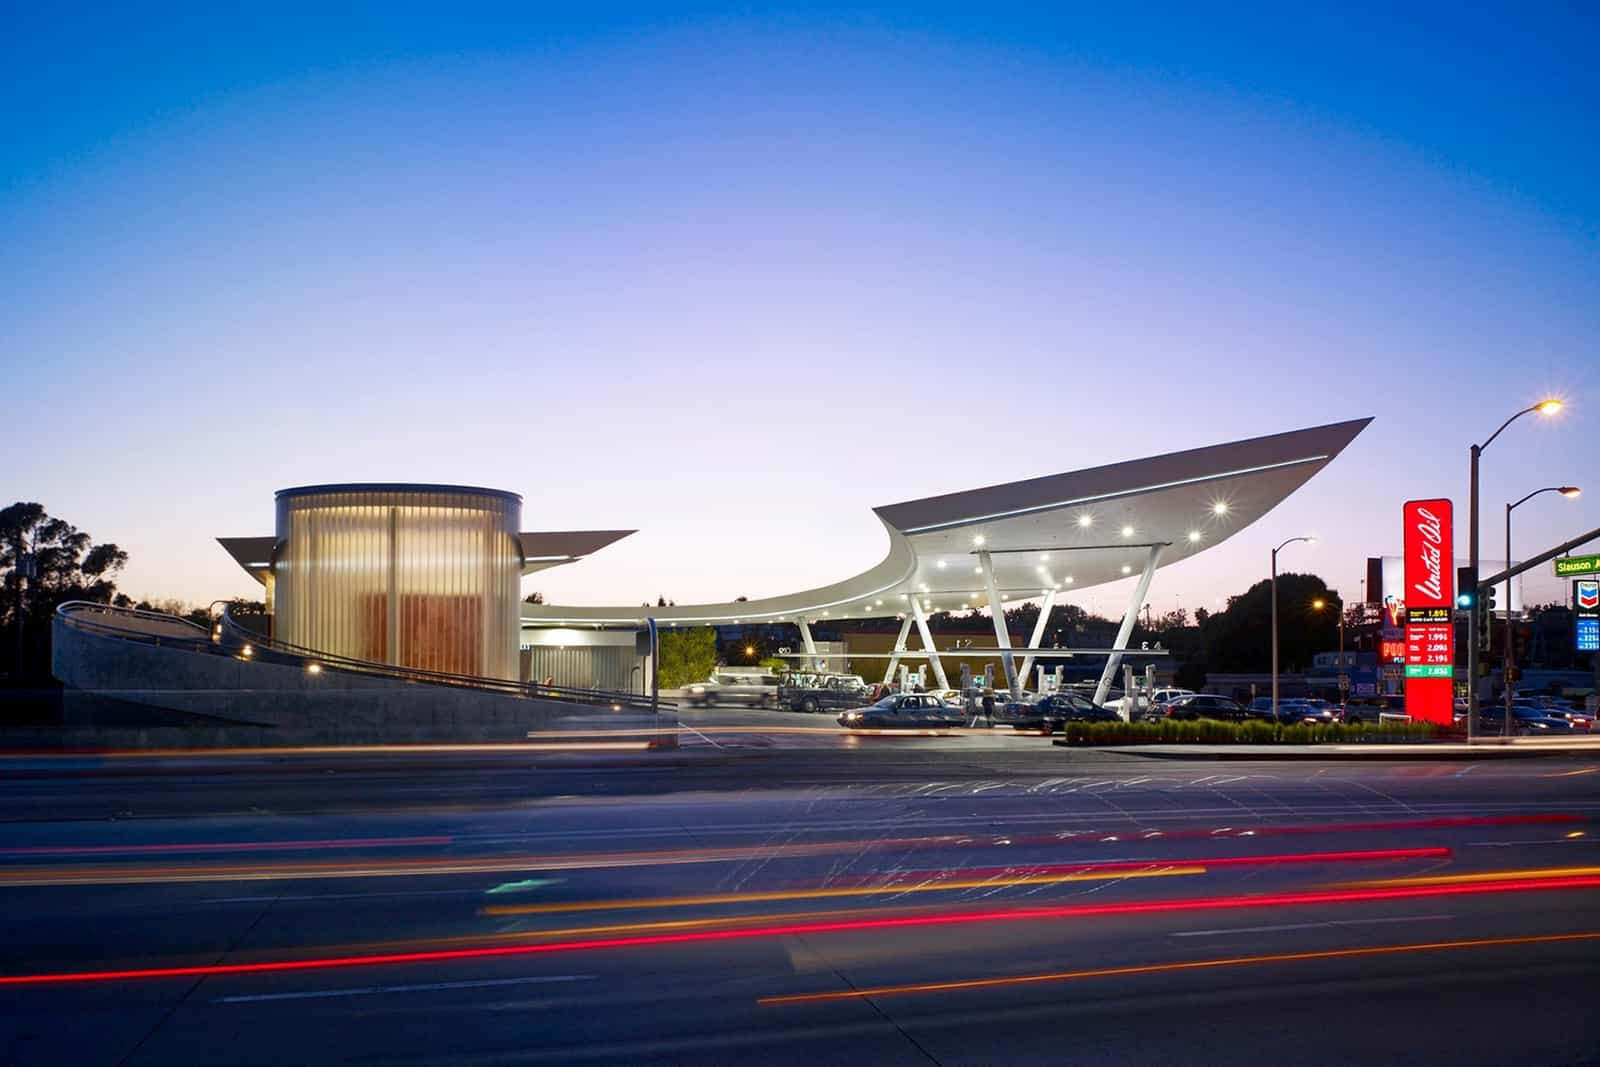 United Oil Gasoline Station, Los Angeles, California. Designed by Kanner Architects, 2009.